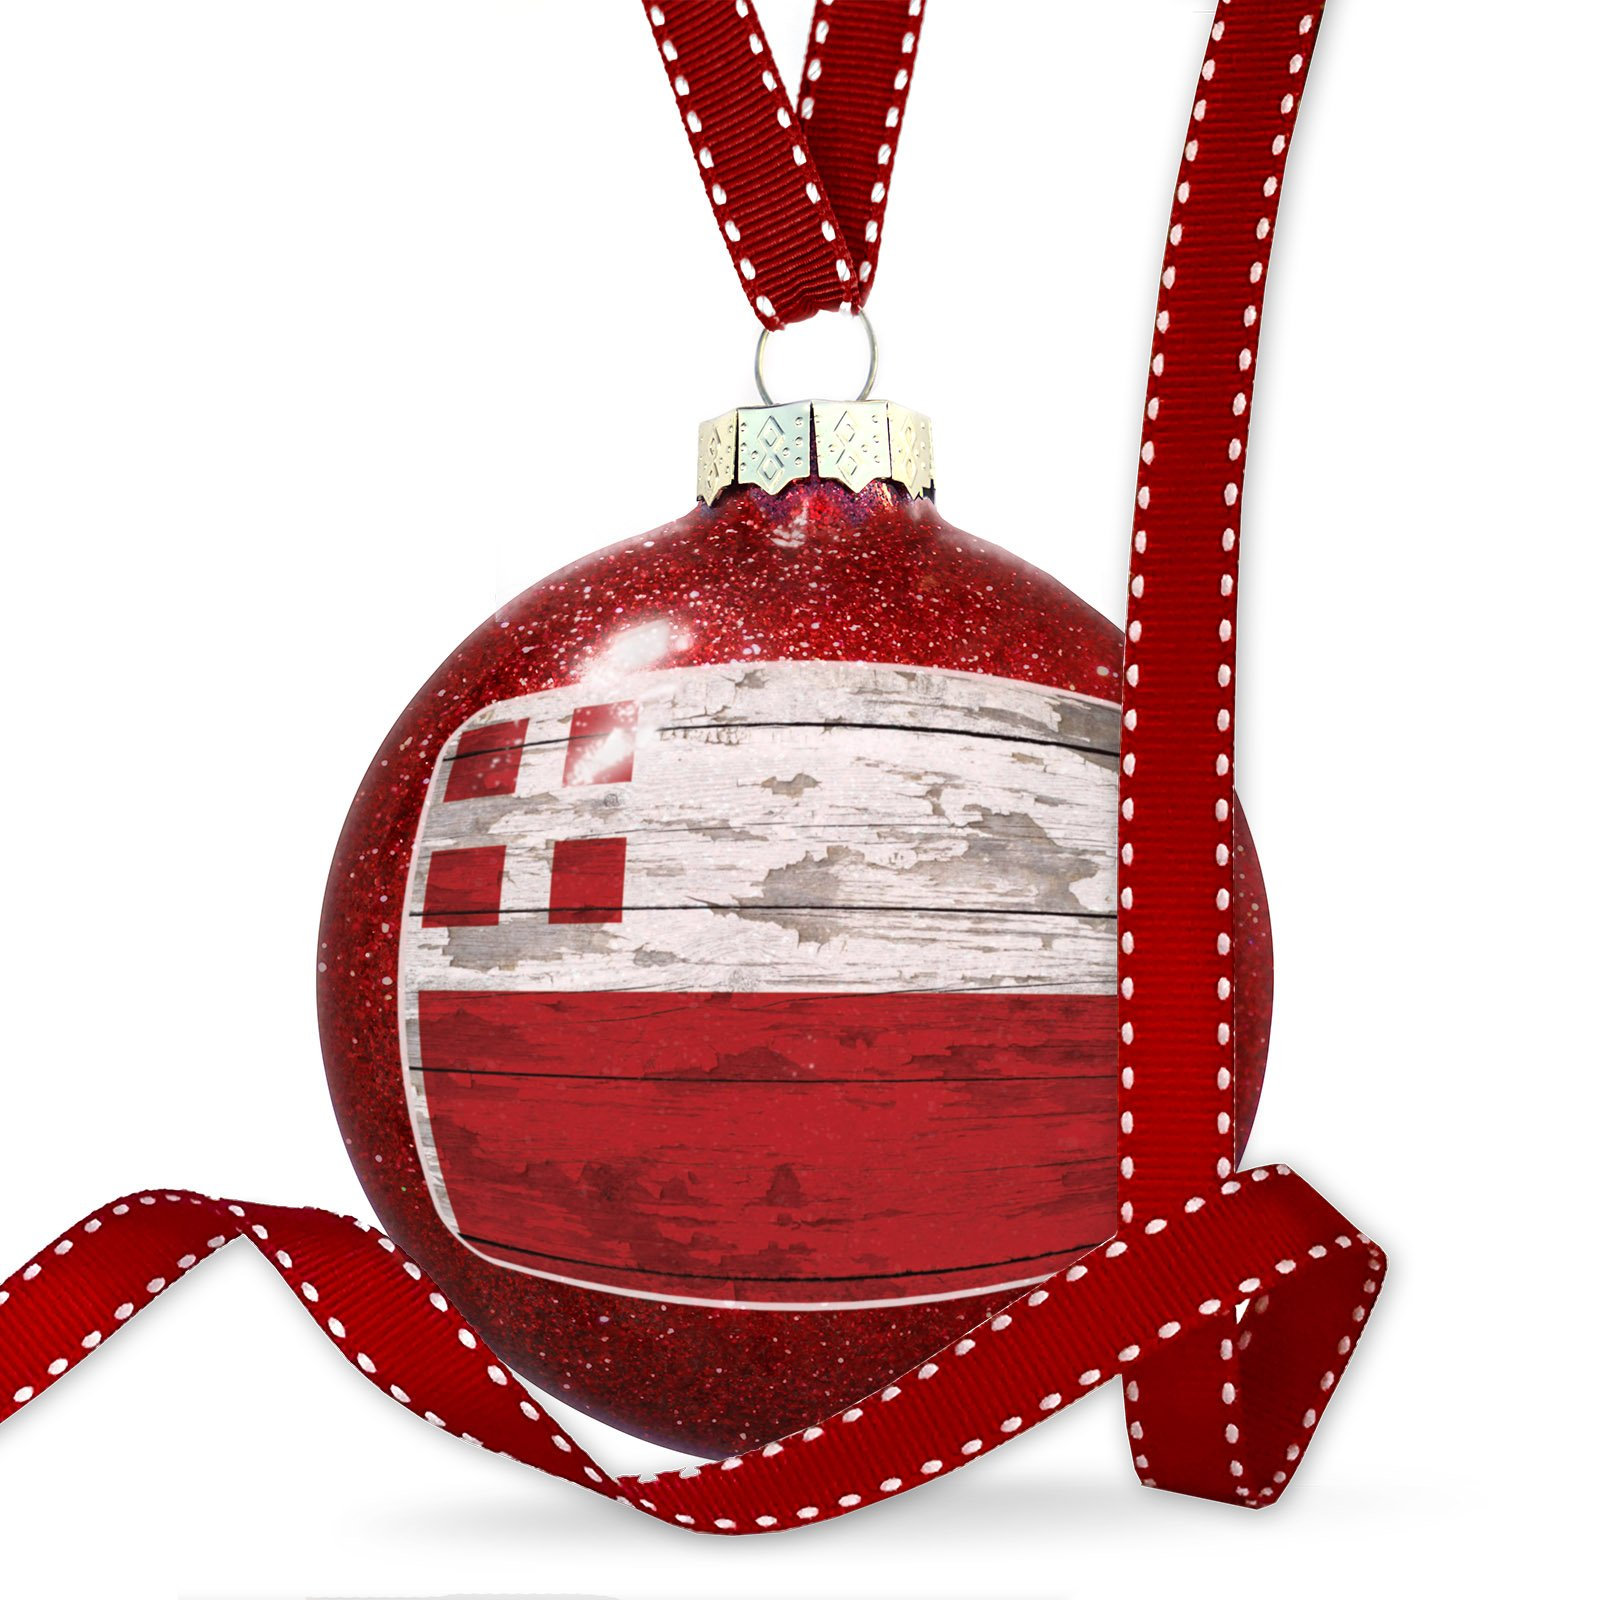 Christmas Decoration Flag on Wood Utrecht region: Netherlands Ornament by NEONBLOND (Image #3)